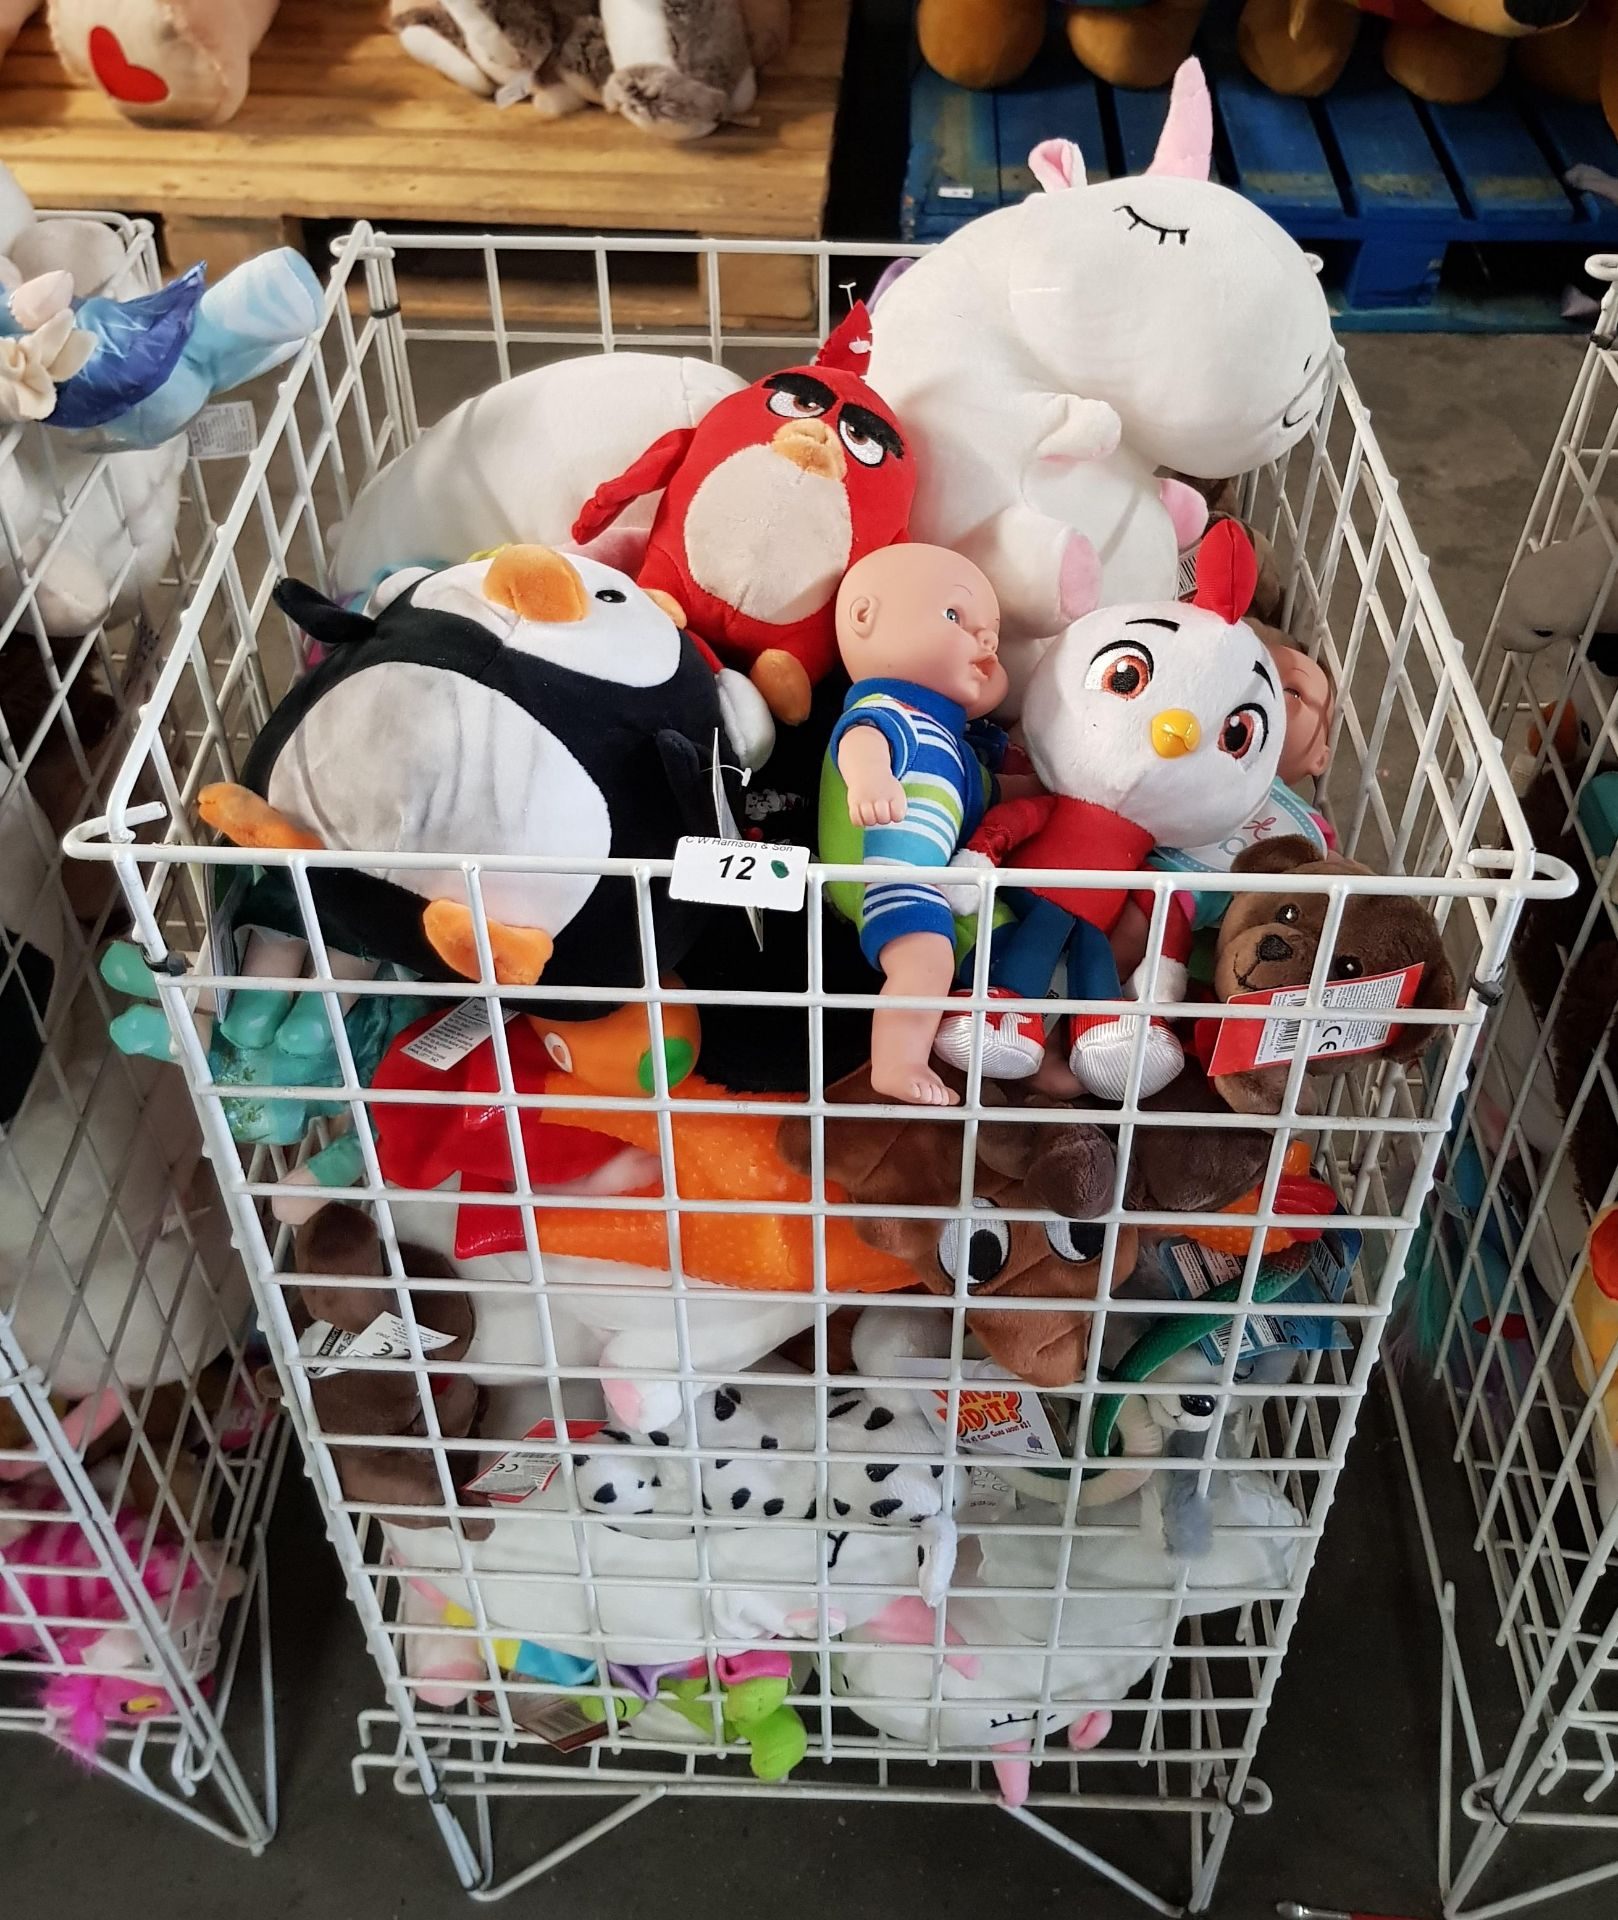 Lot 12 - CONTENTS OF CAGE - MIXED SOFT TOYS